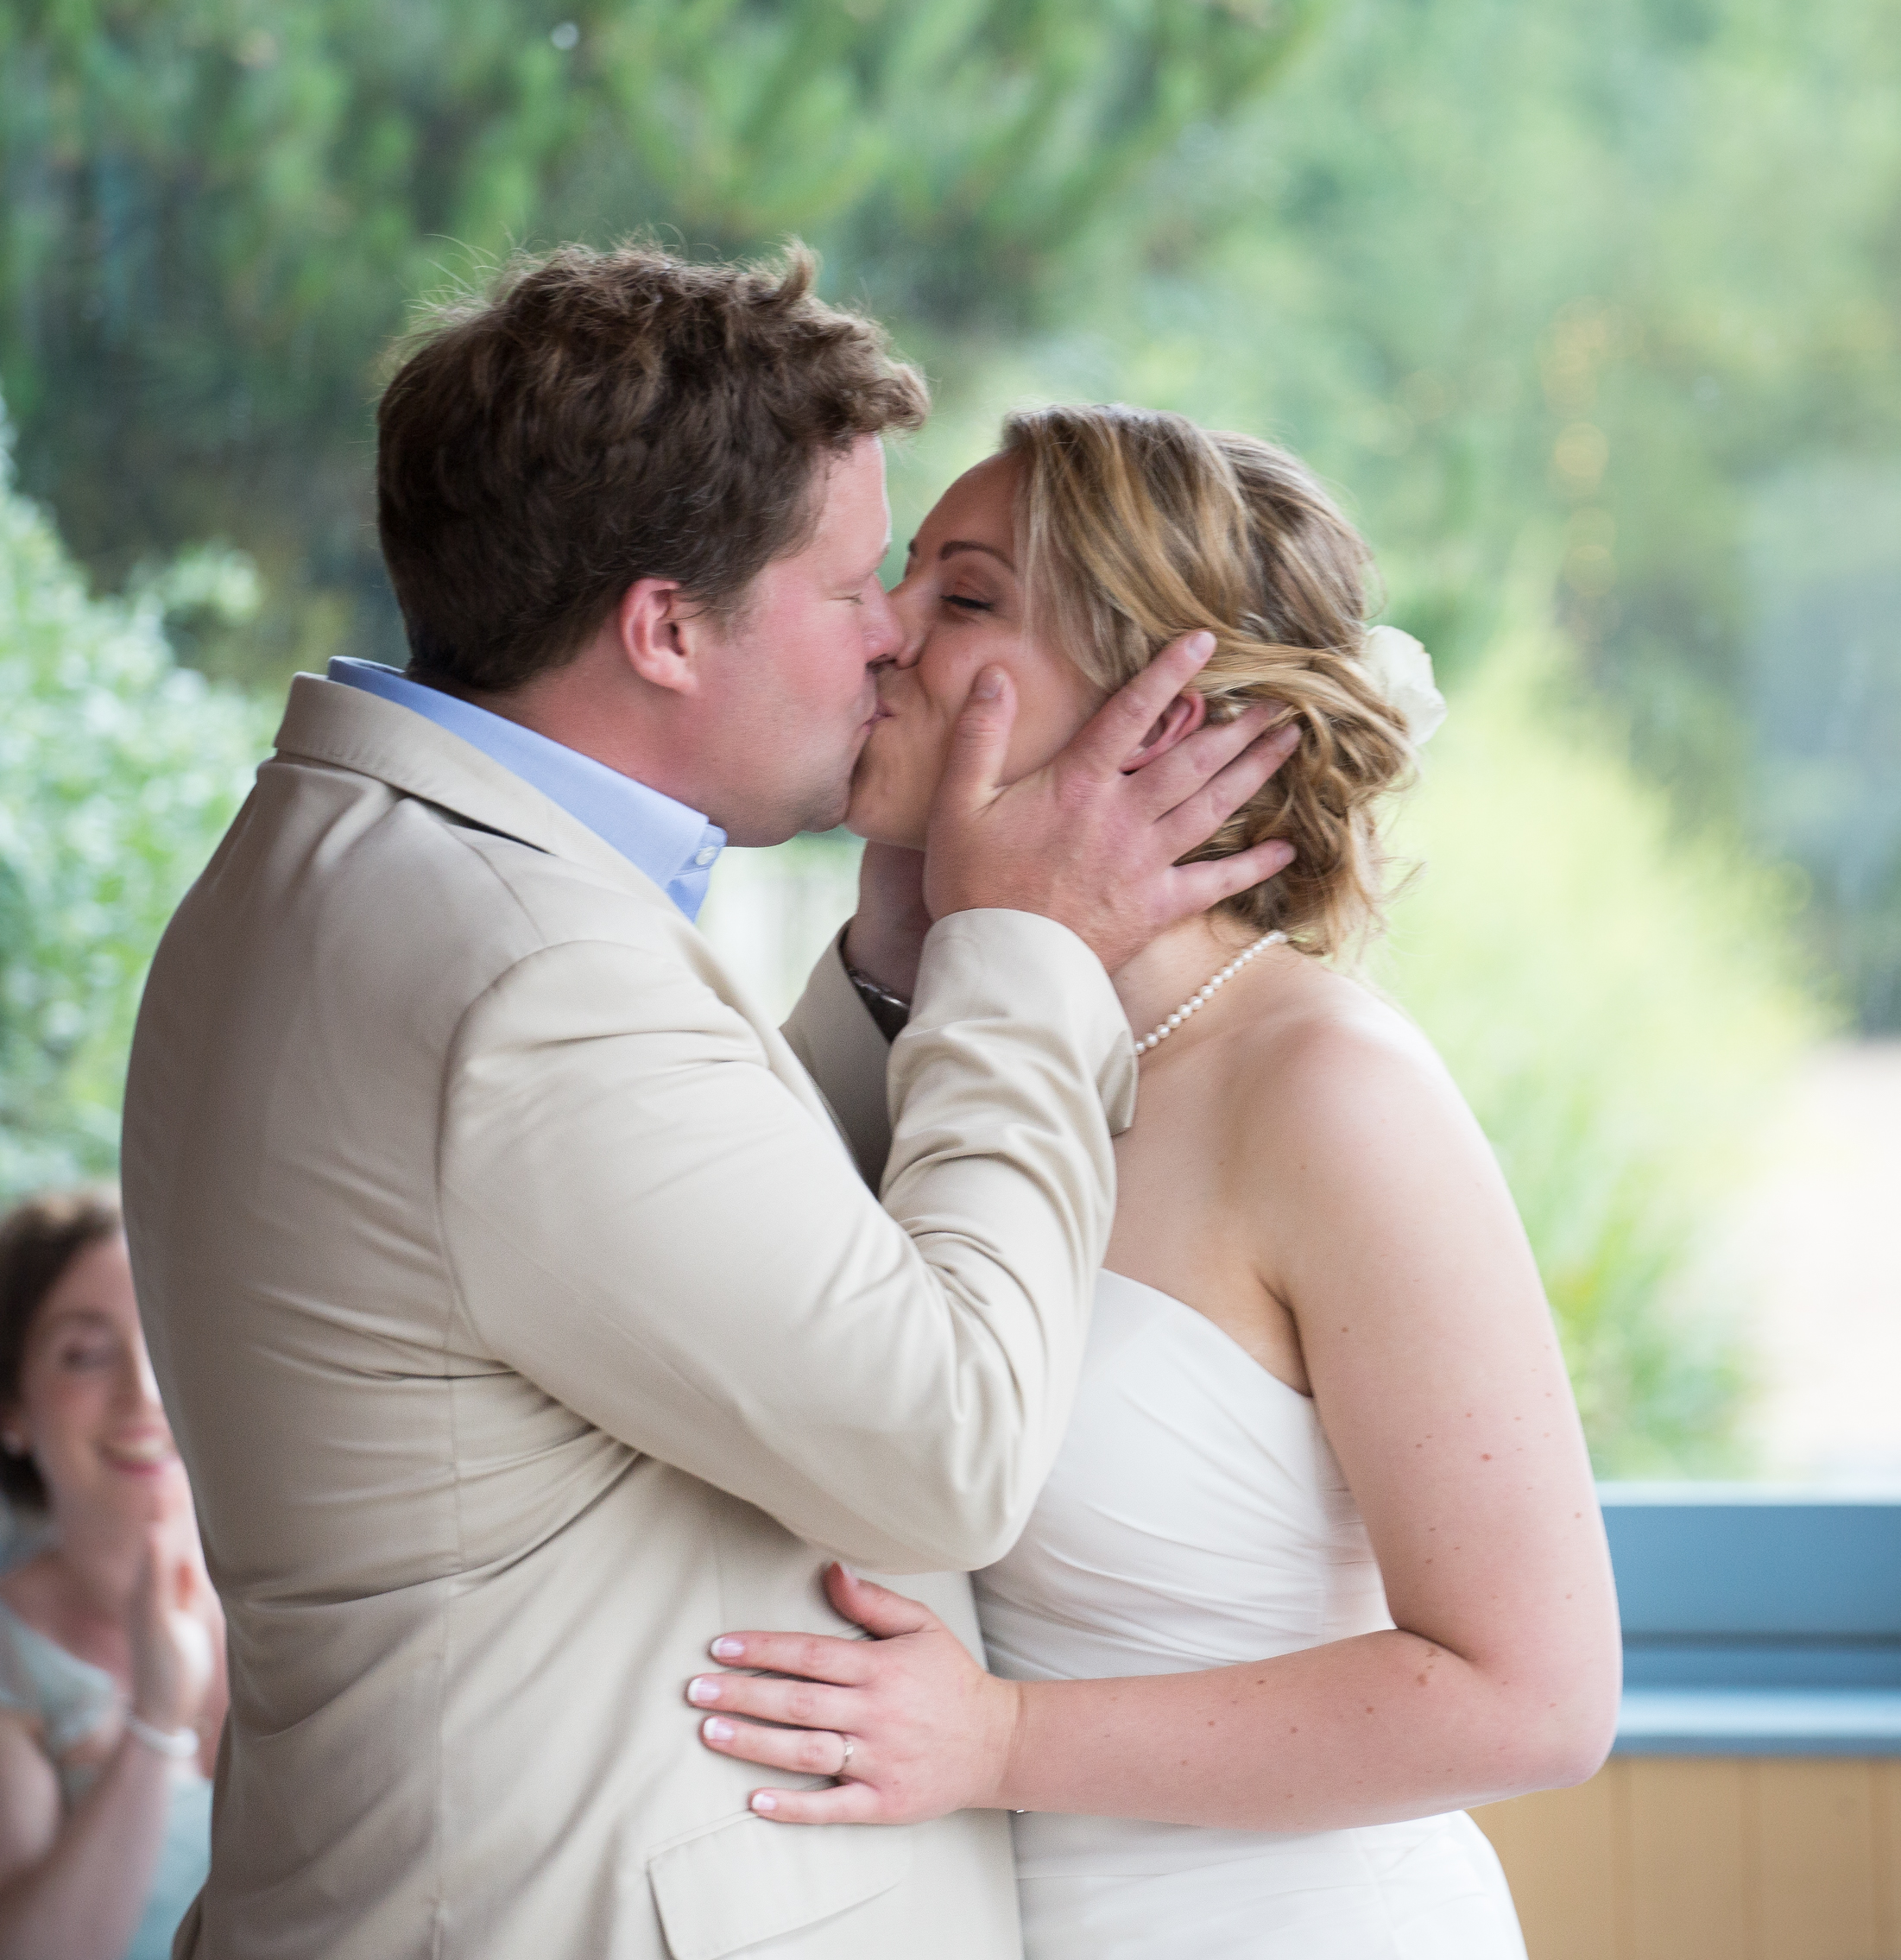 devon bride and groom wedding kiss 1